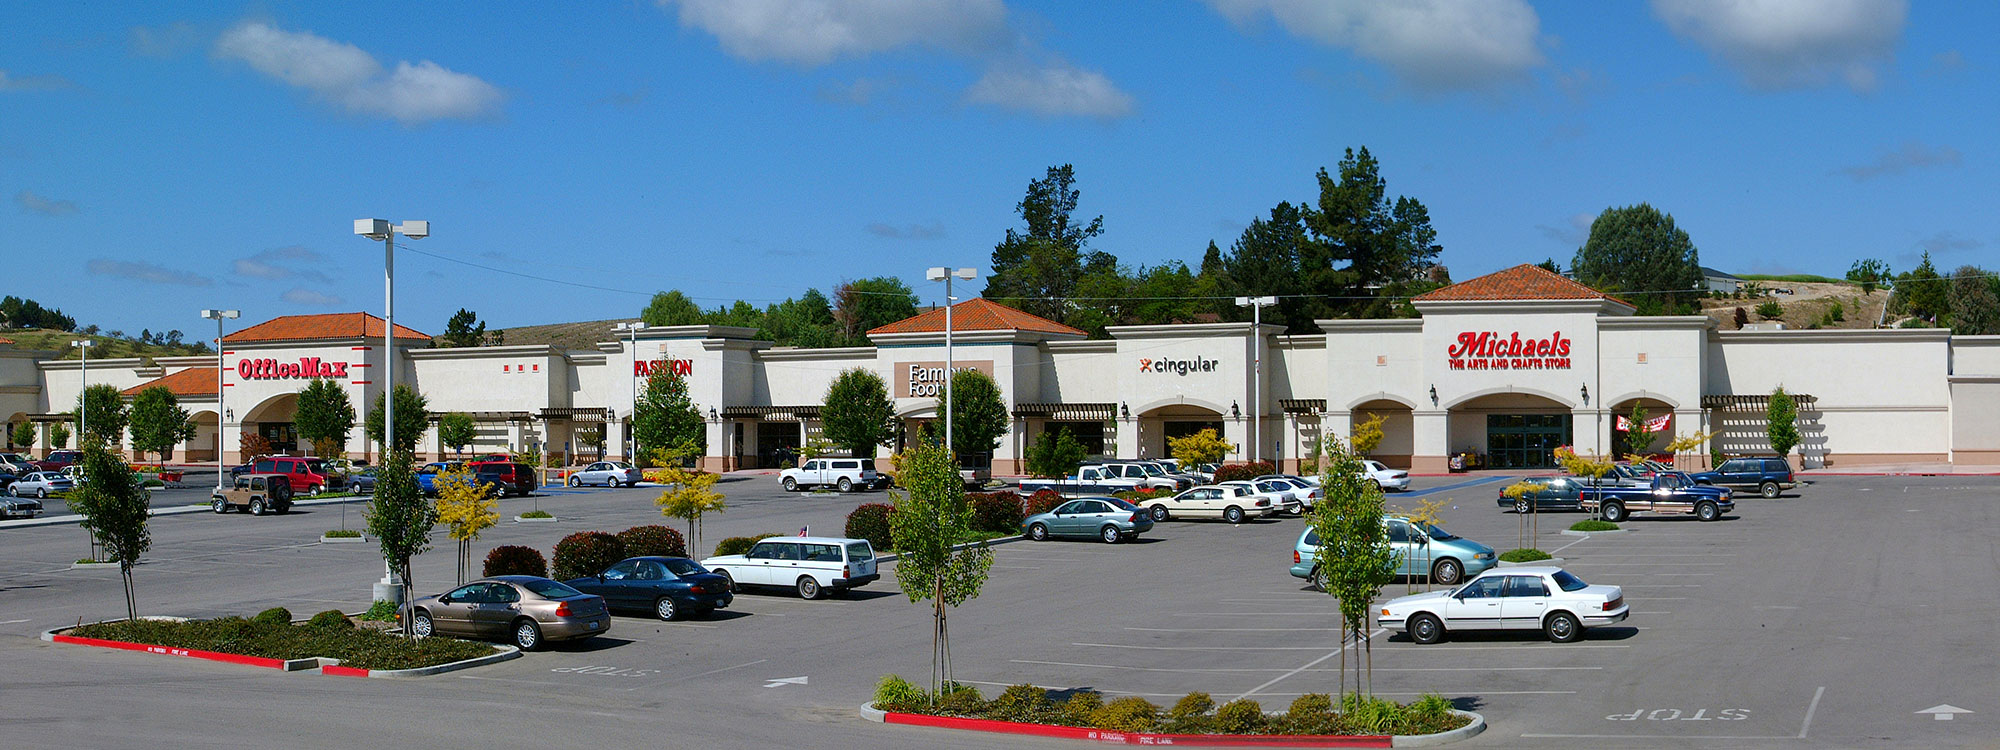 Paso Robles Contractor - Builder of Retail Center - Target Center Contractor - JW Design & Construction